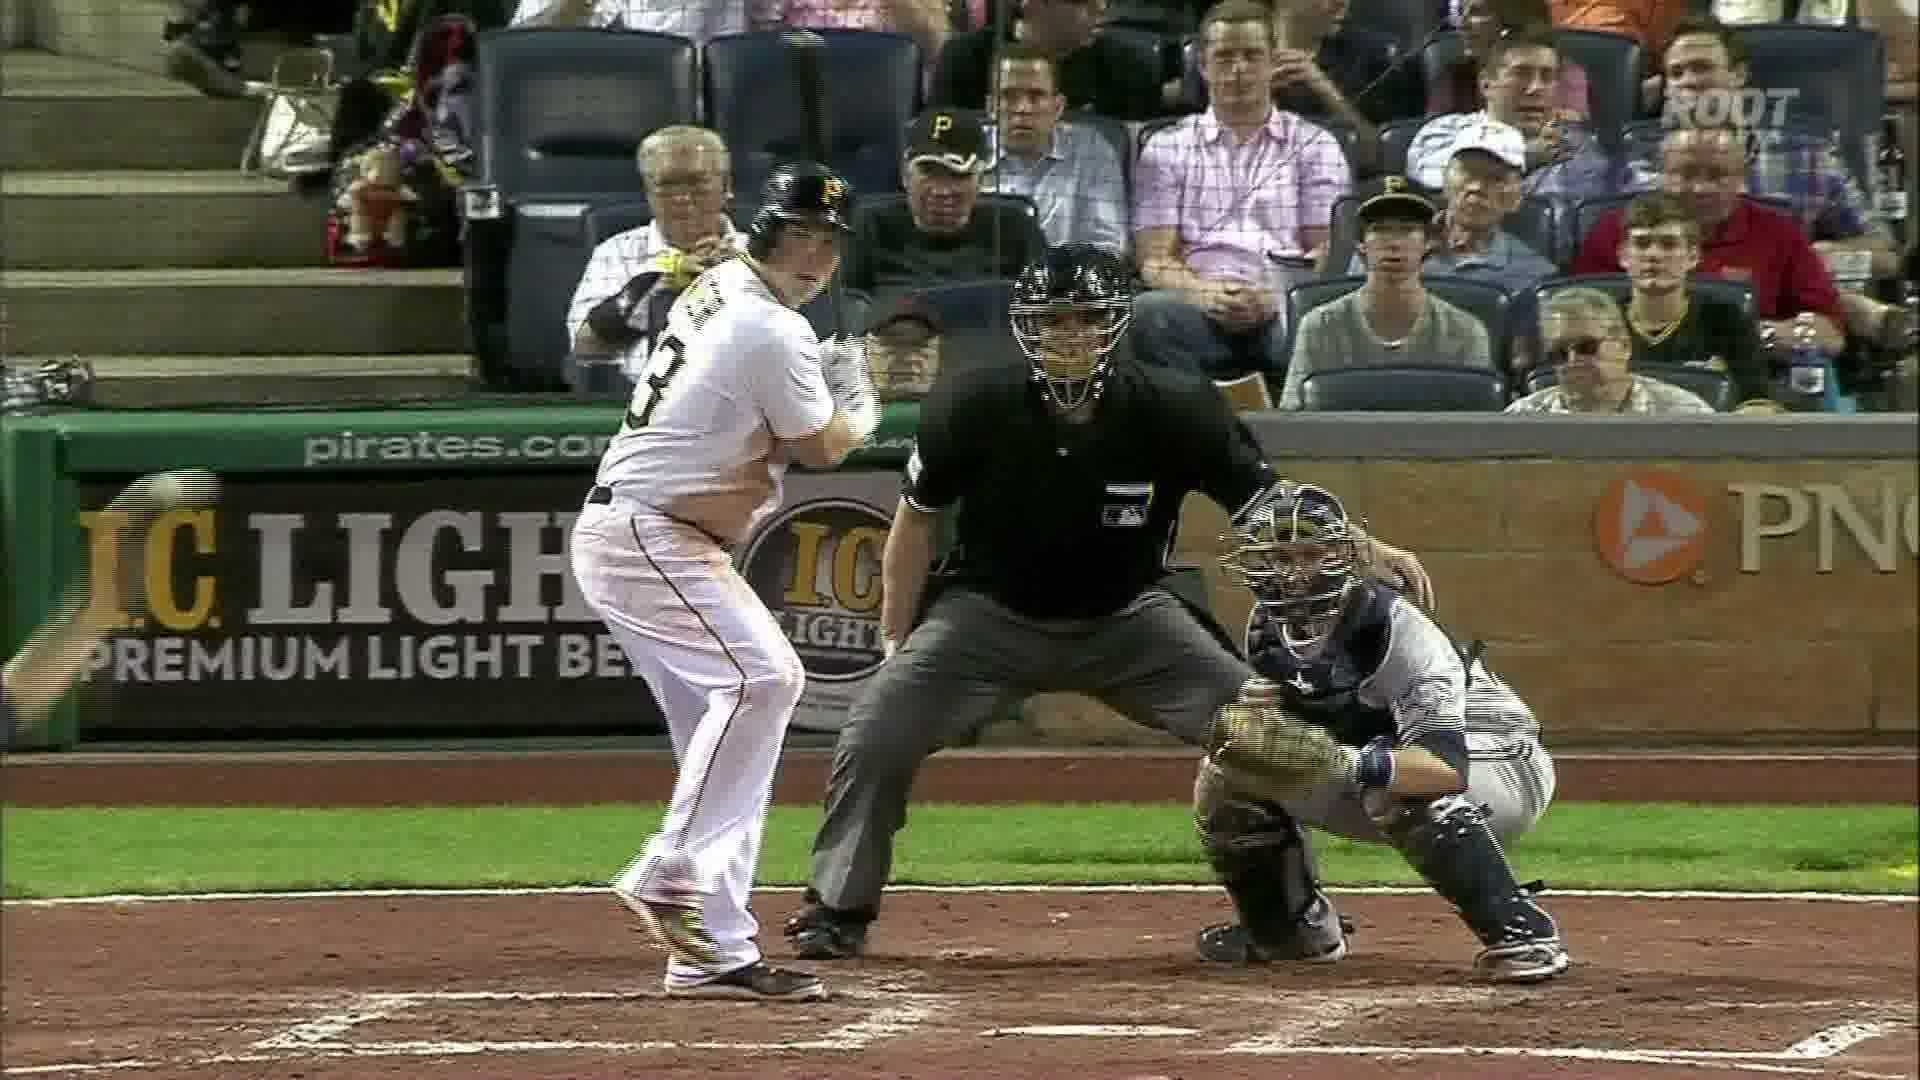 Travis Snider hits his first home run in 9 months in the Pirates' victory over the Milwaukee Brewers.